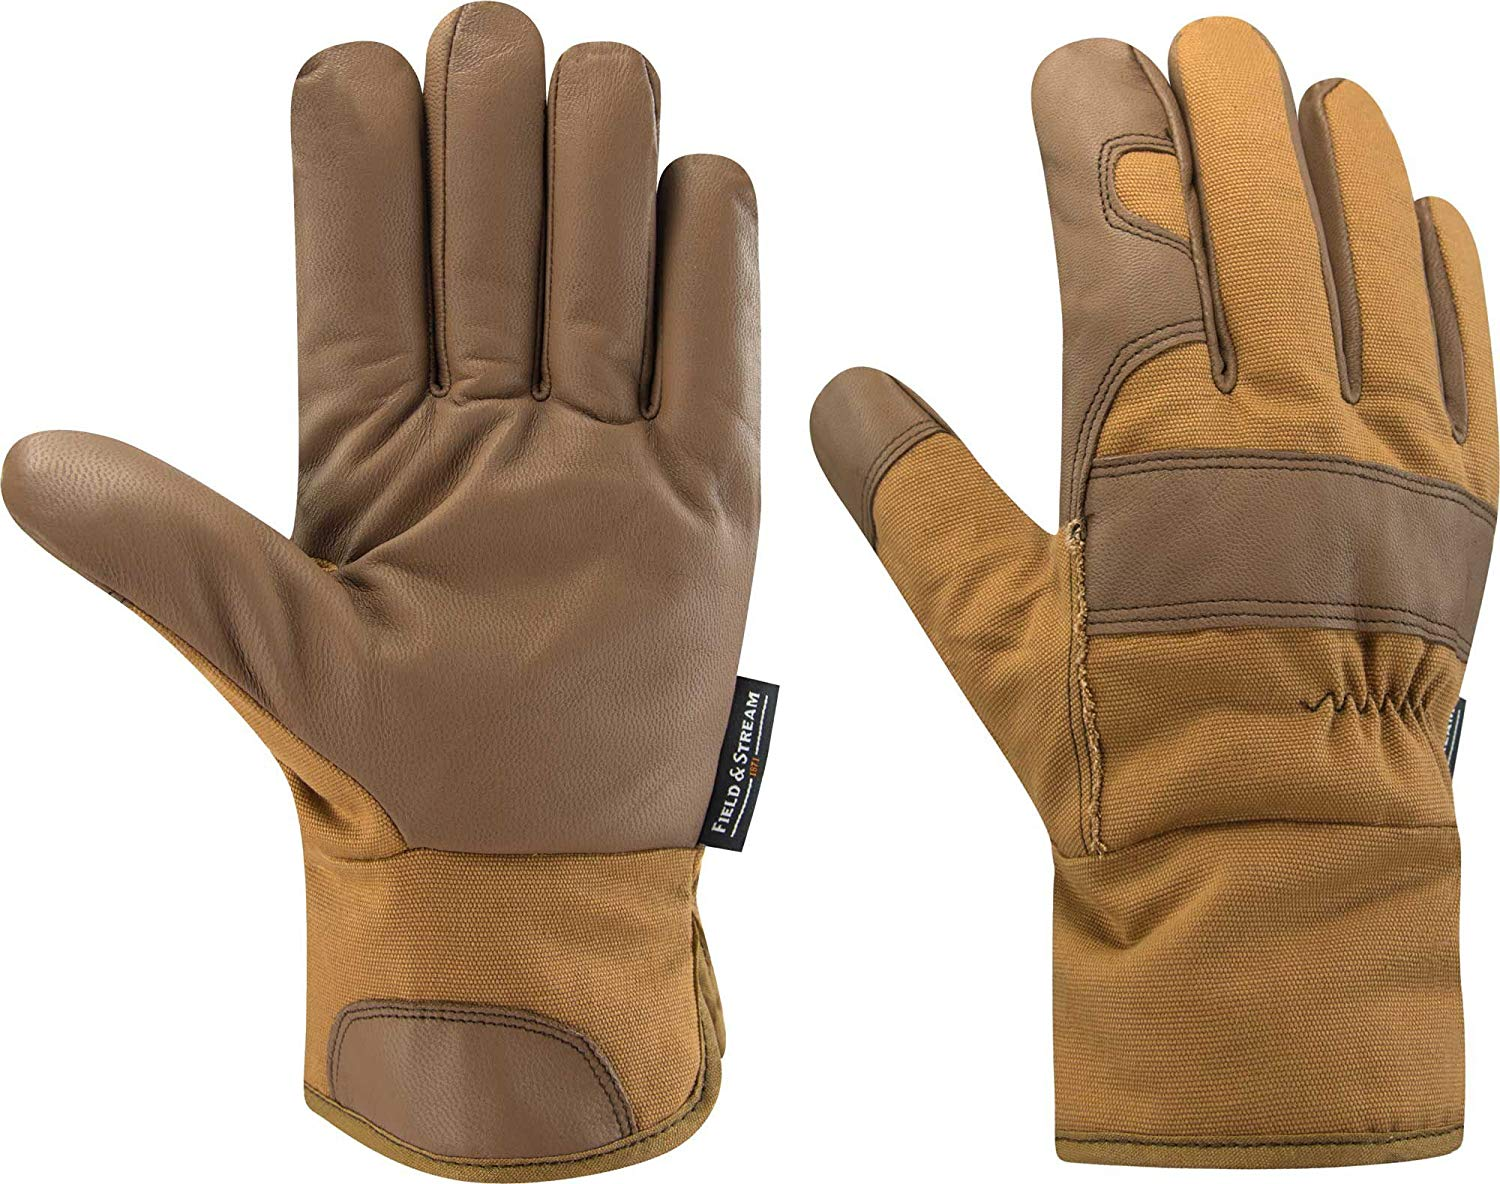 76be65843f24 Get Quotations · Field   Stream Men s Canvas and Leather Gloves